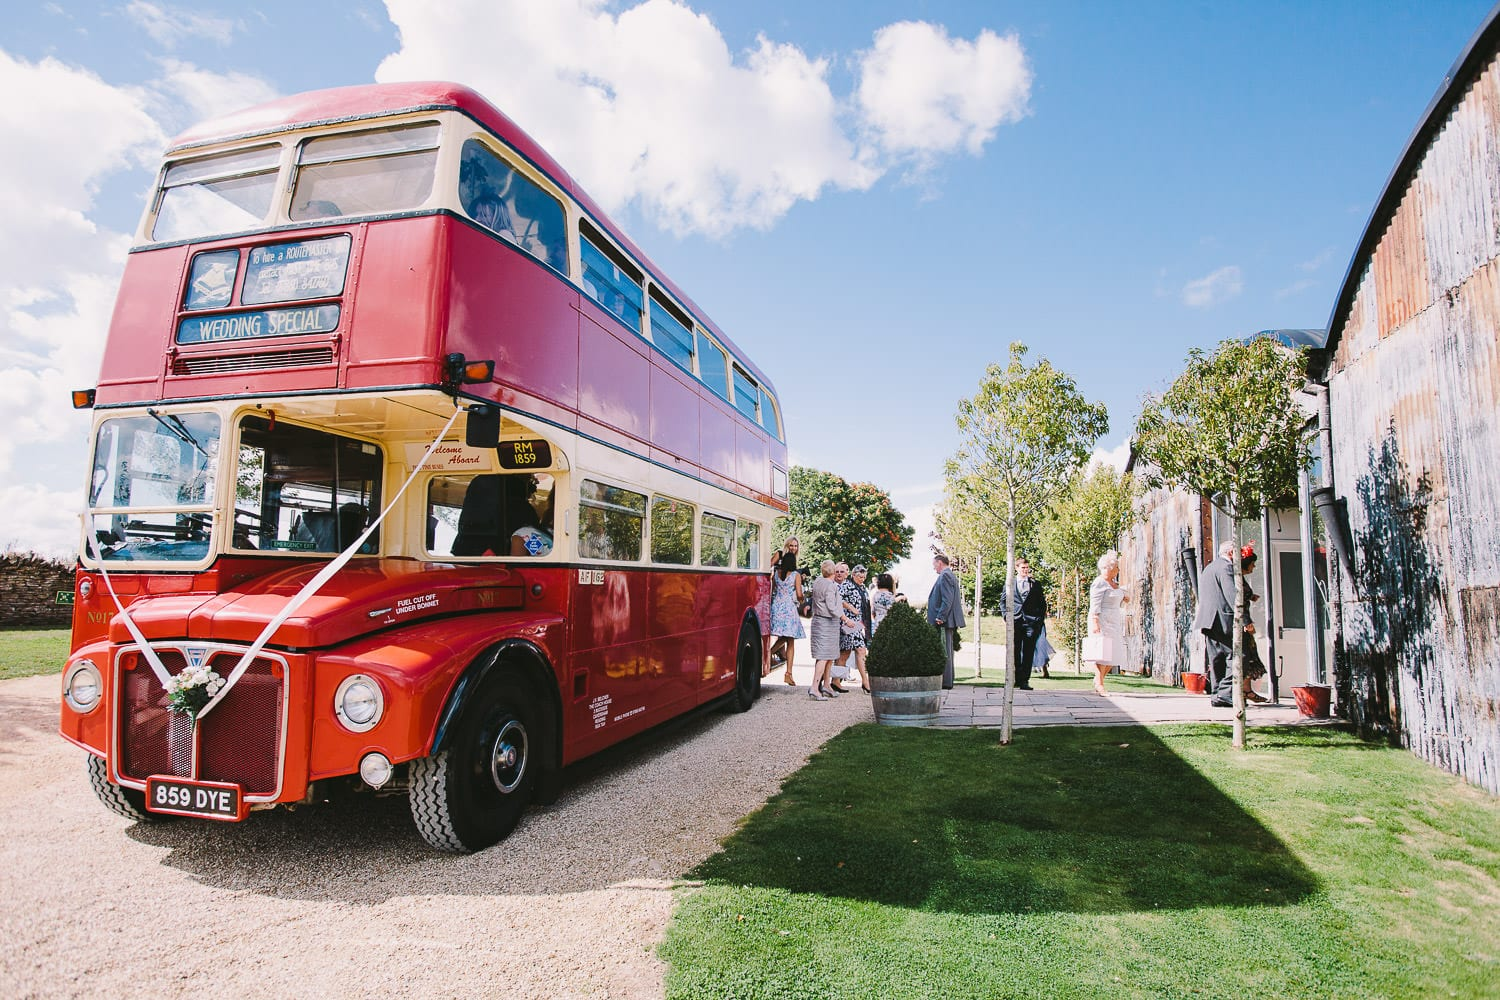 Guests arrive by bus to Cripps Stone Barn